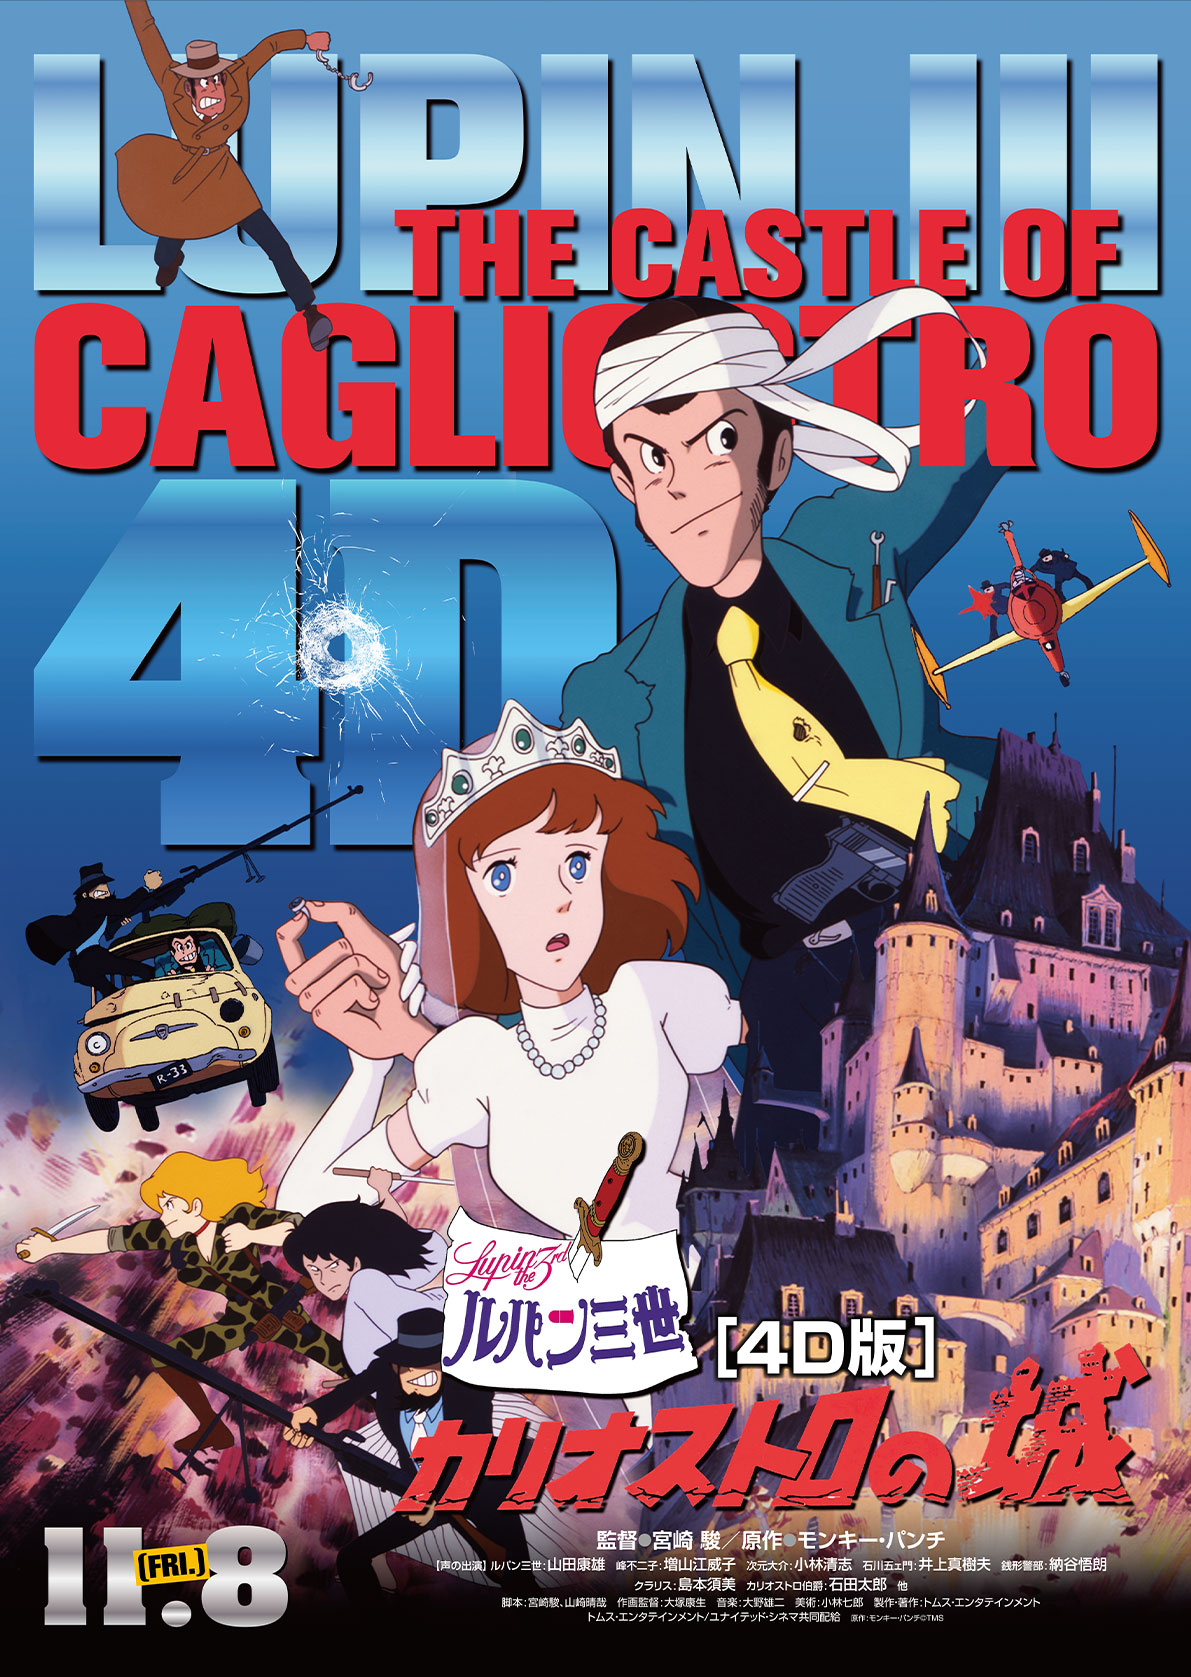 Lupin The Third: The Castle of Cagliostro Re-Imagined Into A 4D Film Experience